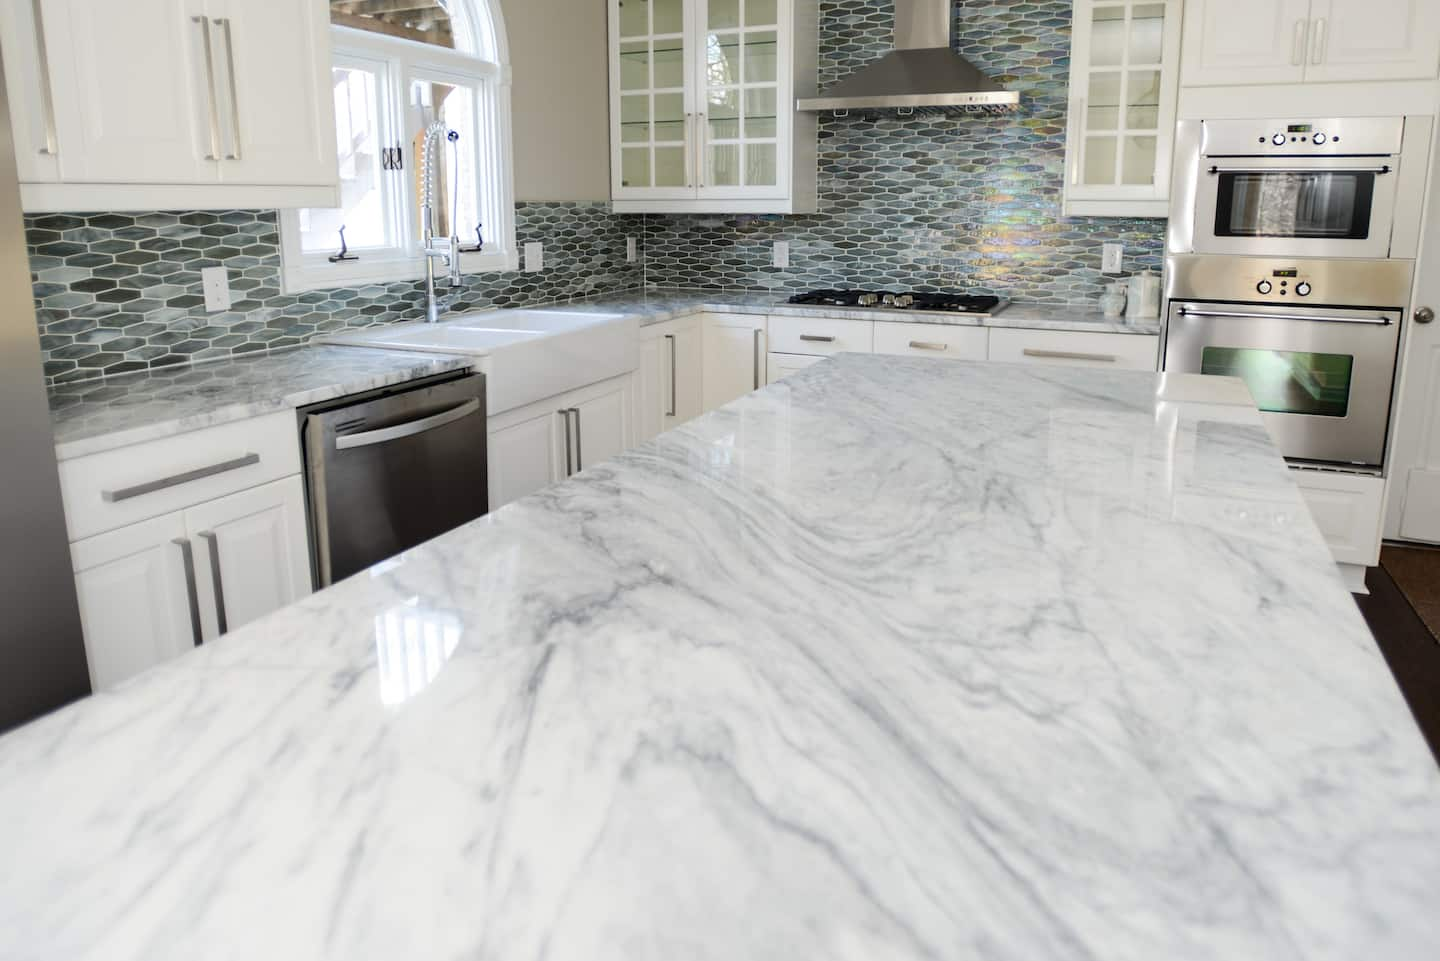 White Marble Counter : The gallery for gt white marble countertops